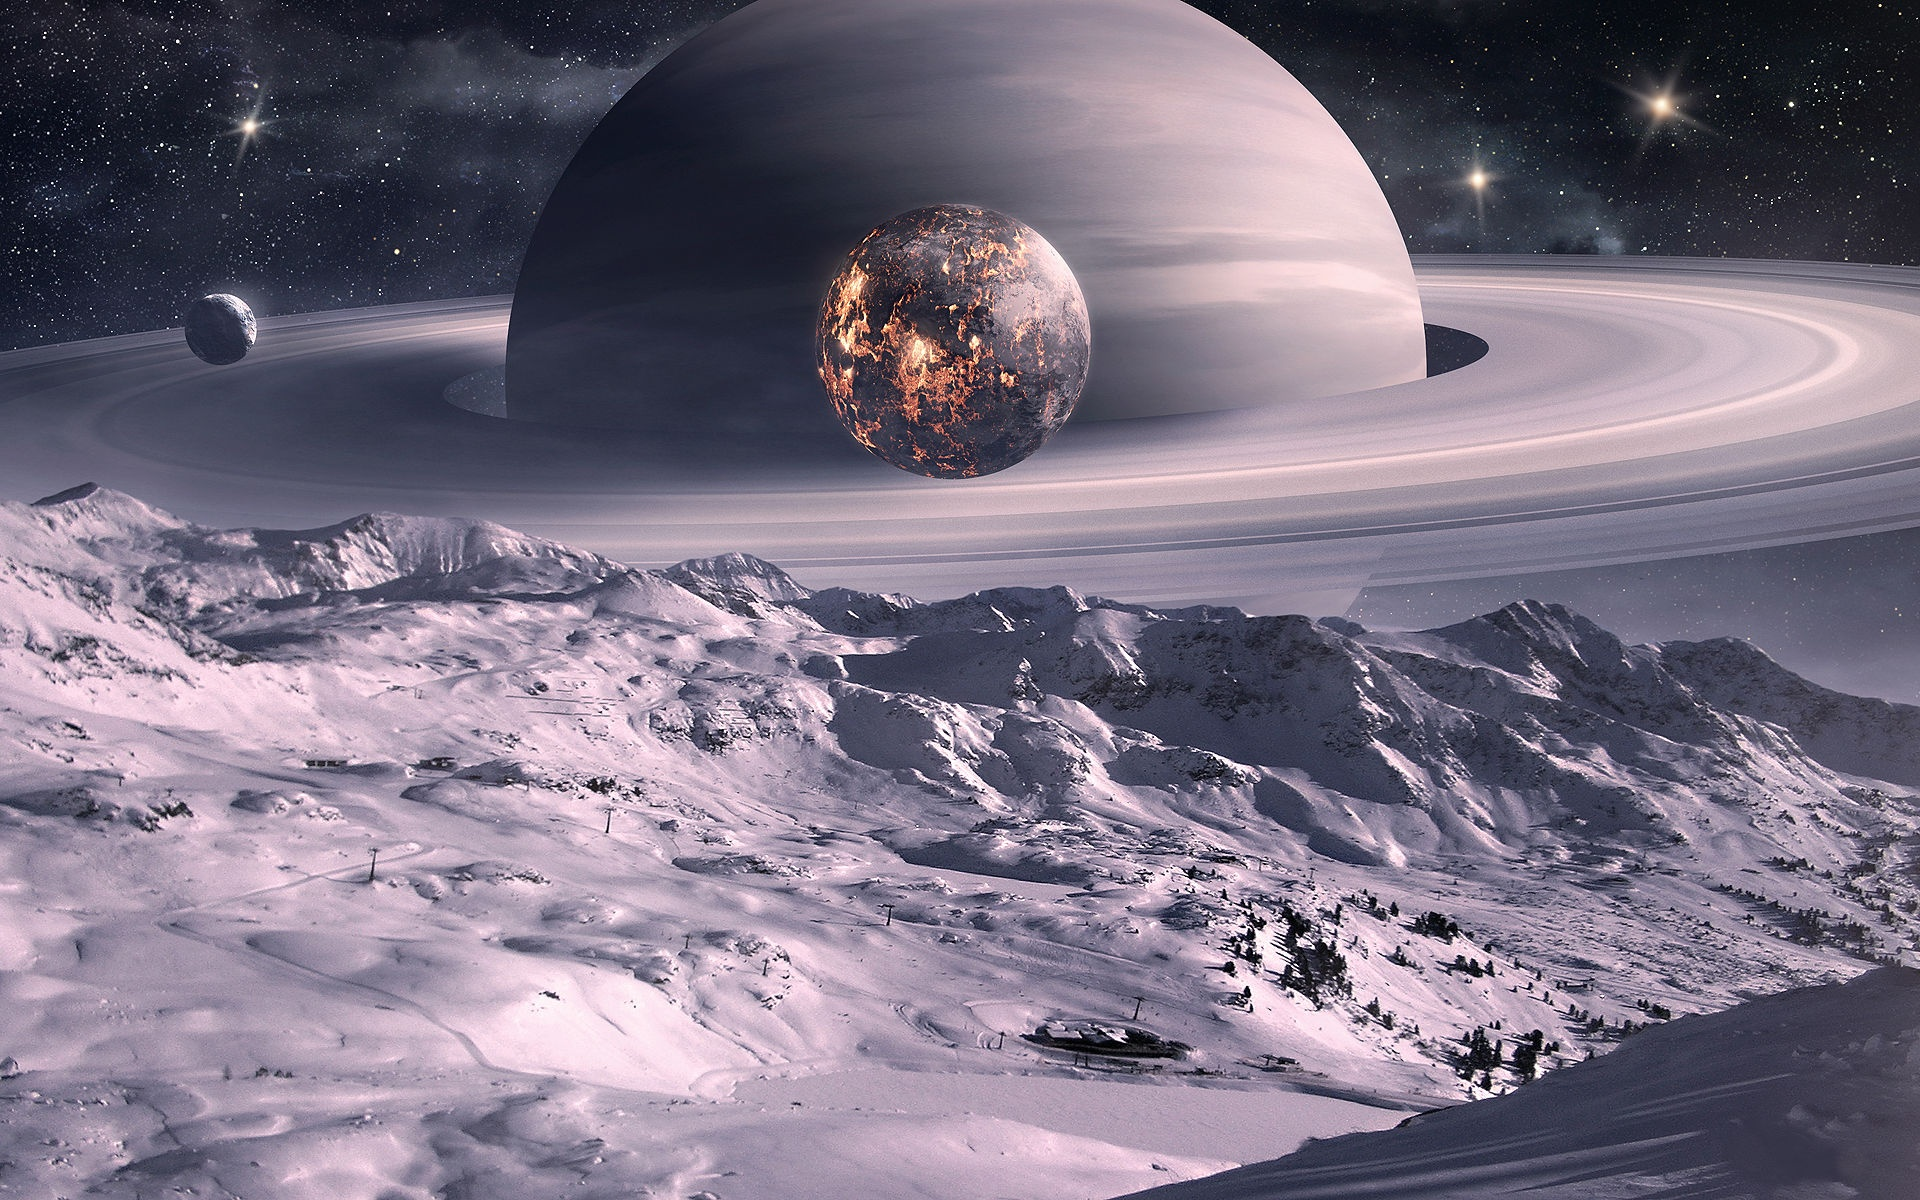 Moon Of Saturn Wallpapers - 1920x1200 - 884257